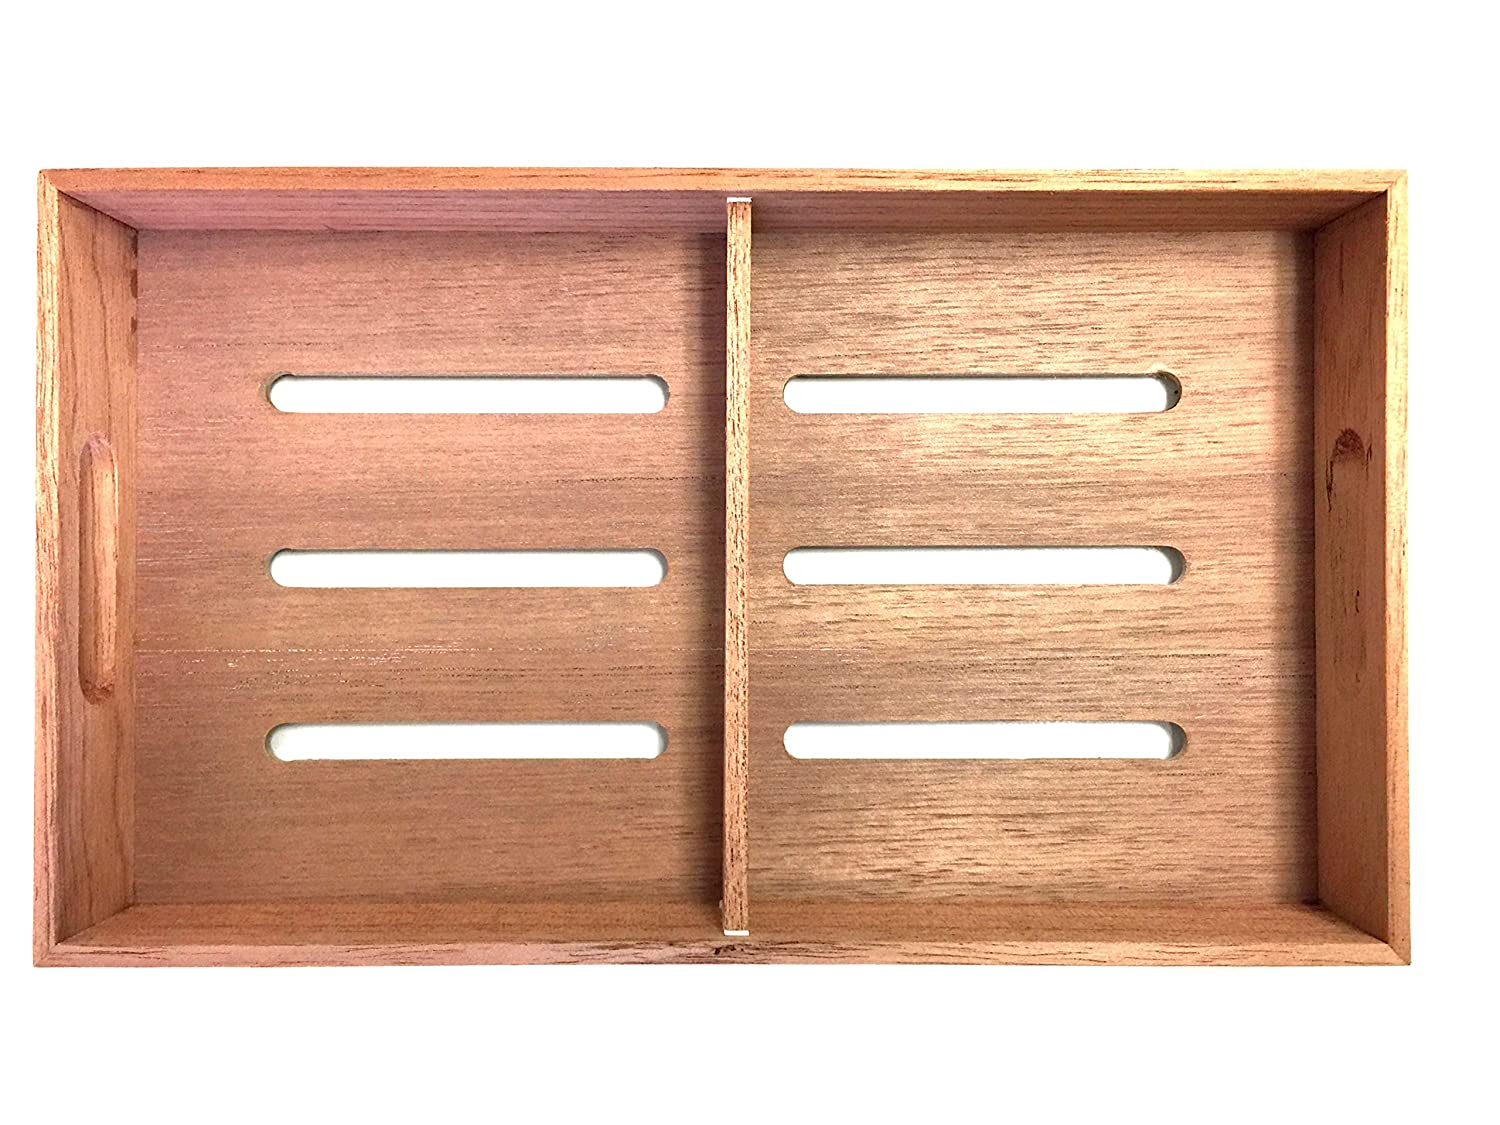 F.e.s.s. Fess Storage versatility Cedar Tray with Adjustable Divider F.e.s.s. Products